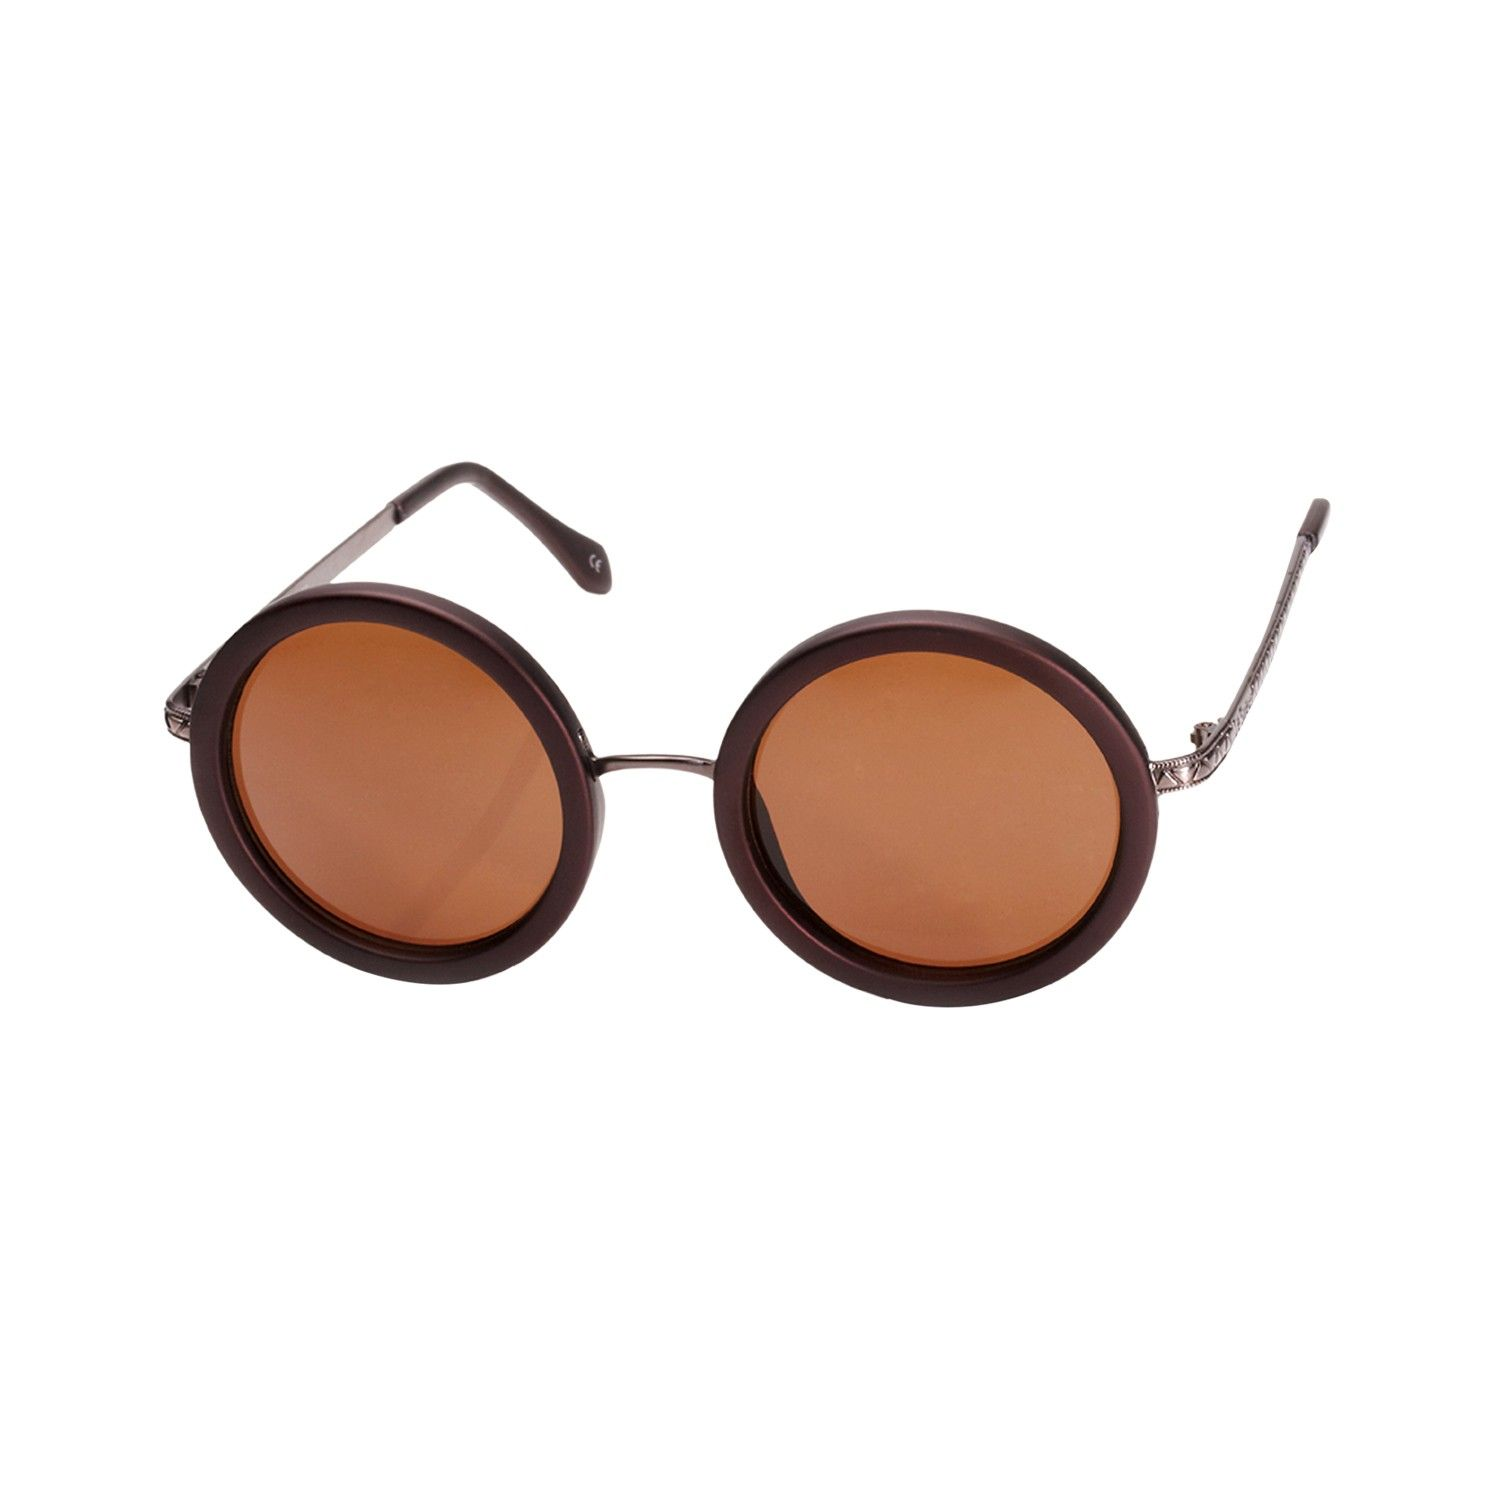 ZIGGY BROWN SUNGLASSES - New In - Products - Woman